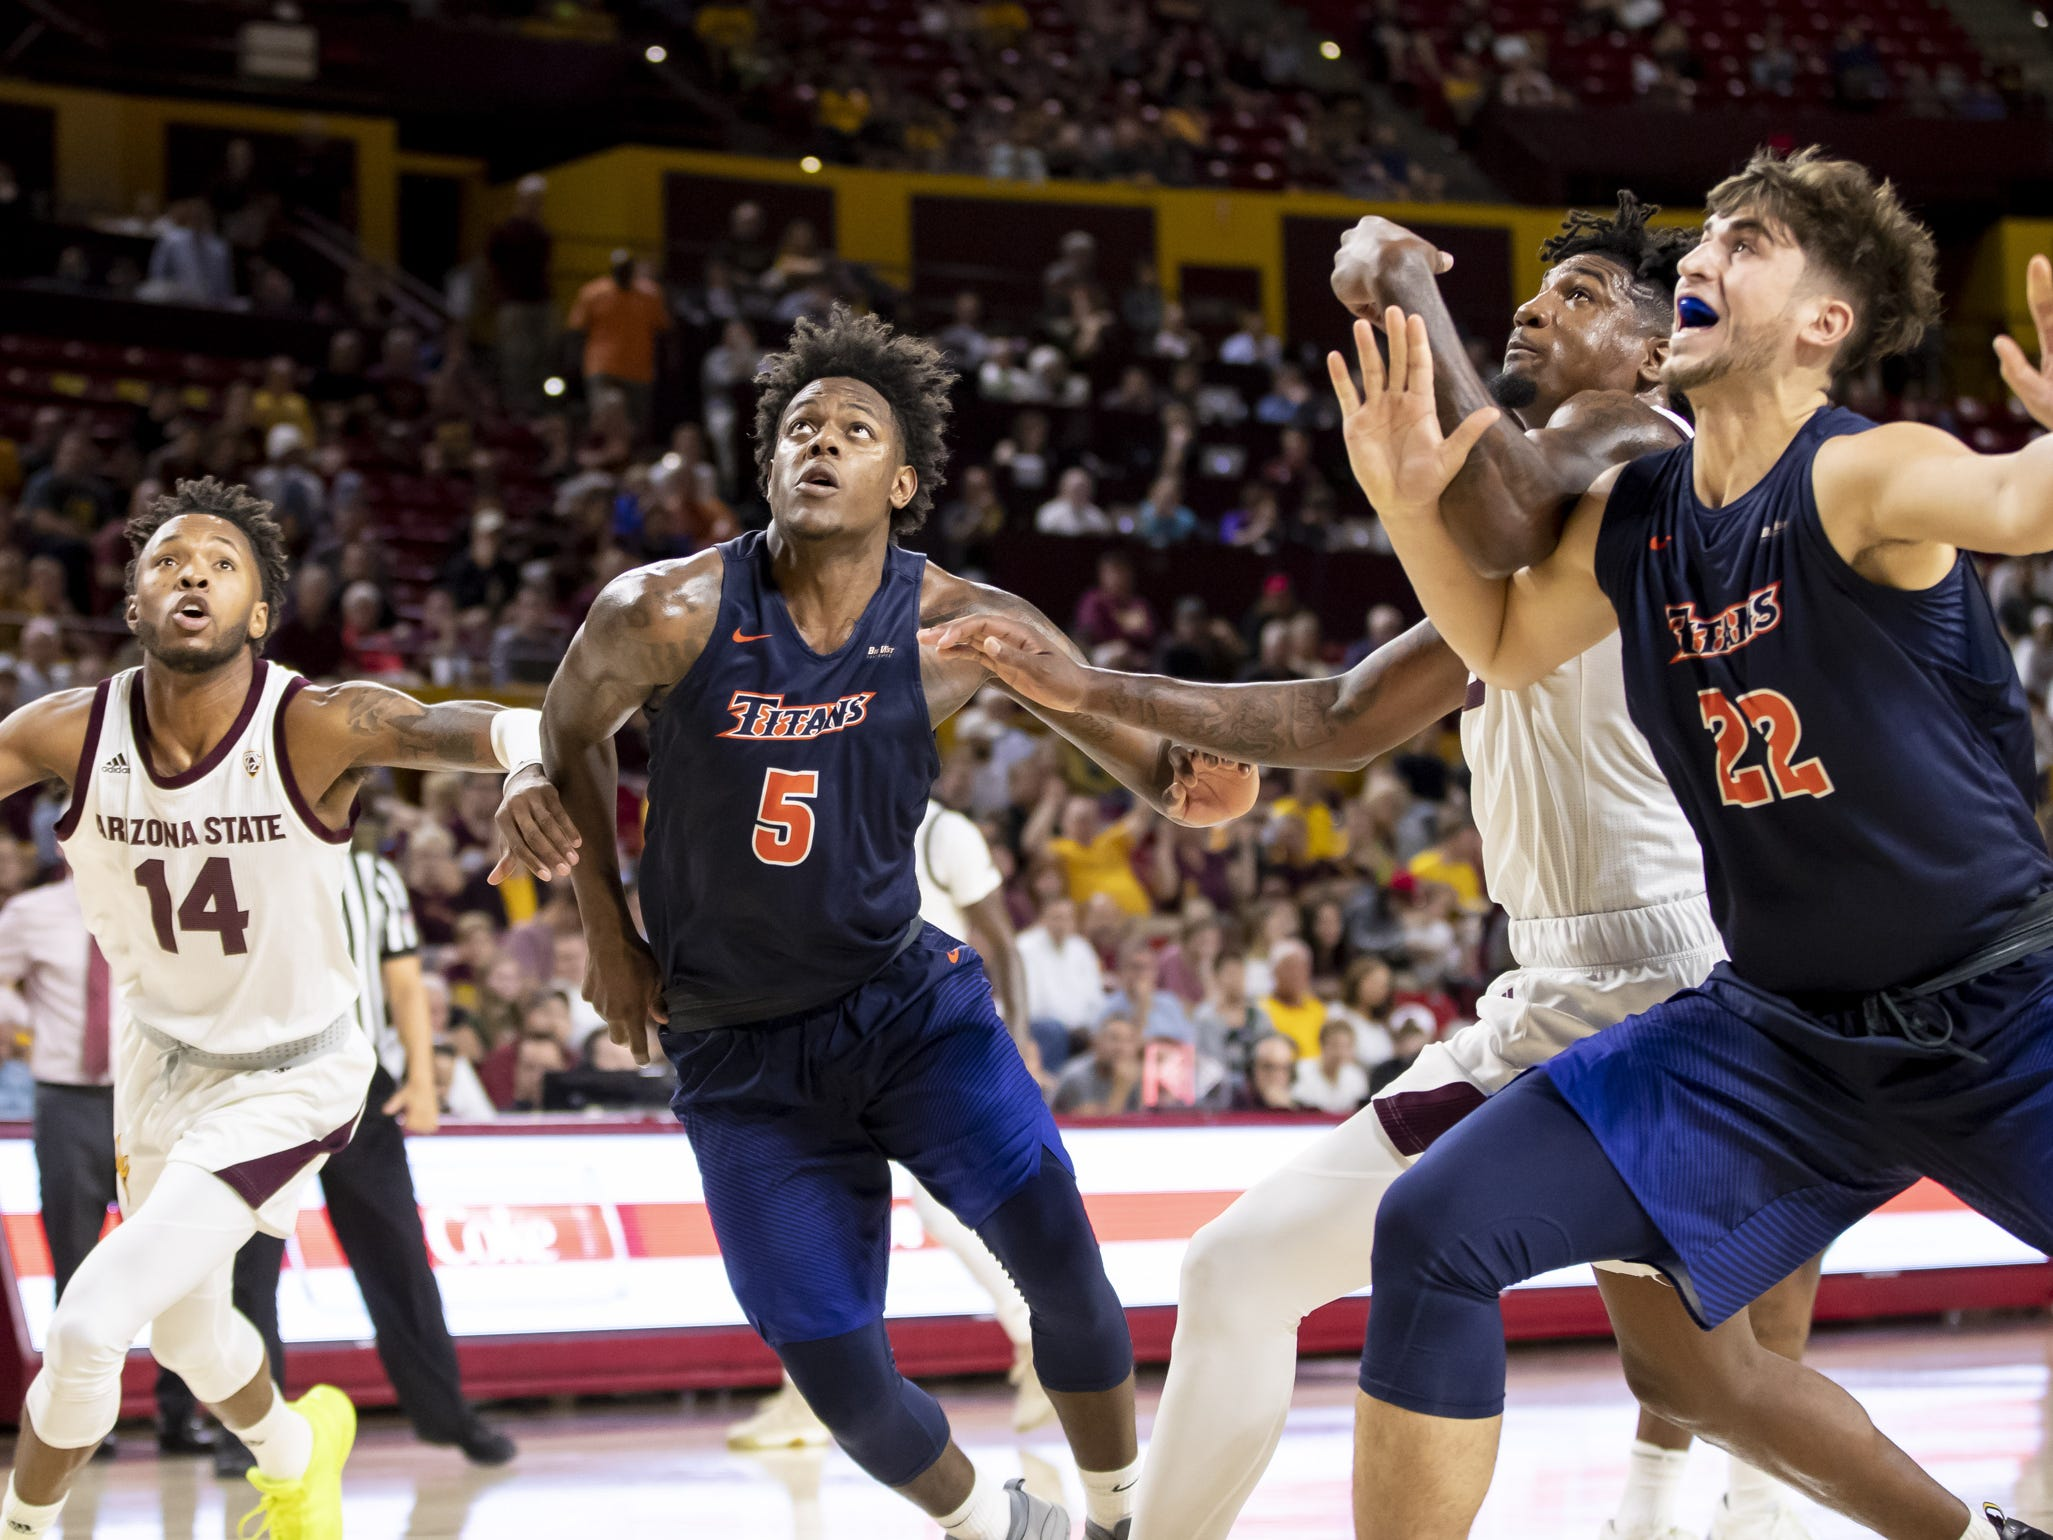 (L-R) Forward Kimani Lawrence (14) of the Arizona State Sun Devils, forward Davon Clare (5) of the Cal State Fullerton Titans, forward Romello White (23) of the Arizona State Sun Devils and forward Amel Kuljuhovic (22) of the Cal State Fullerton Titans look for a rebound at Wells Fargo Arena on Tuesday, November 6, 2018 in Tempe, Arizona.